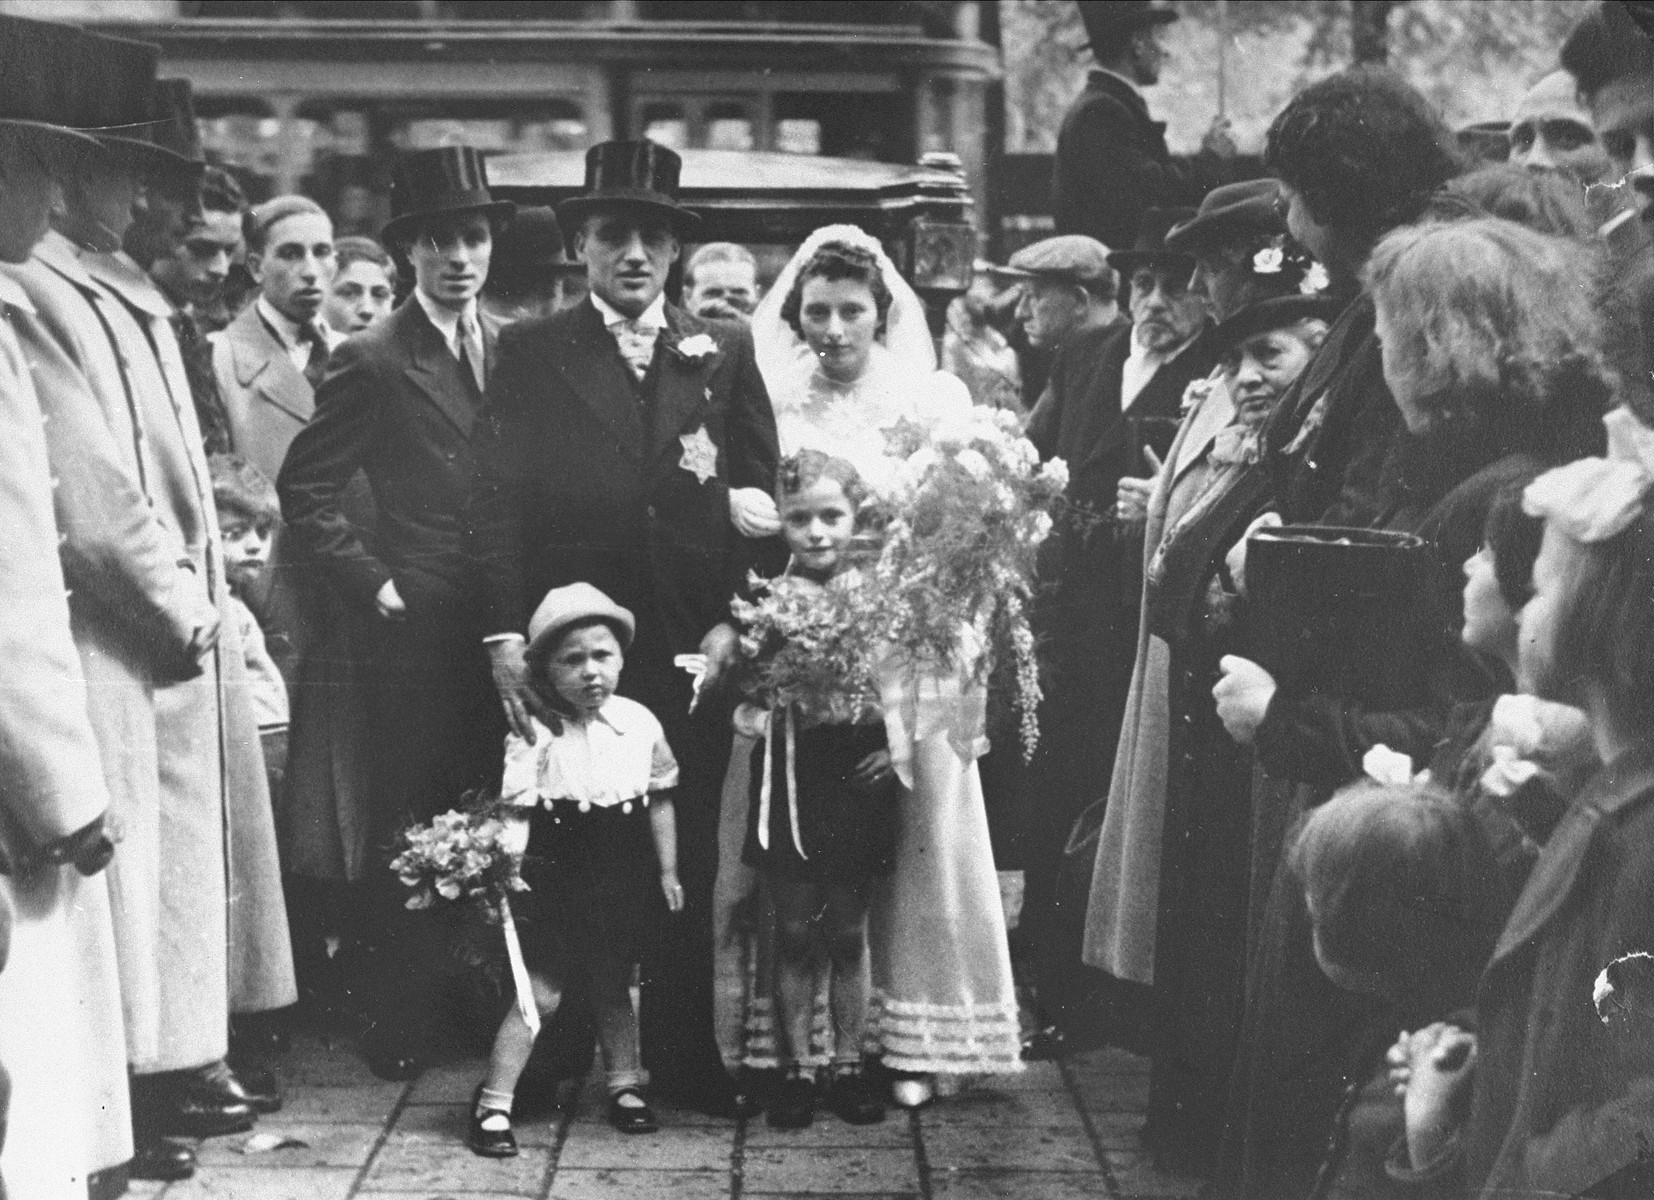 The wedding of Salomon Schrijver and  Flora Mendels in the Jewish quarter of Amsterdam.    Salomon Schrijver (the donor's first cousin) and his wife were deported to Westerbork, and from there, to Sobibor, where they were killed on July 9, 1943.